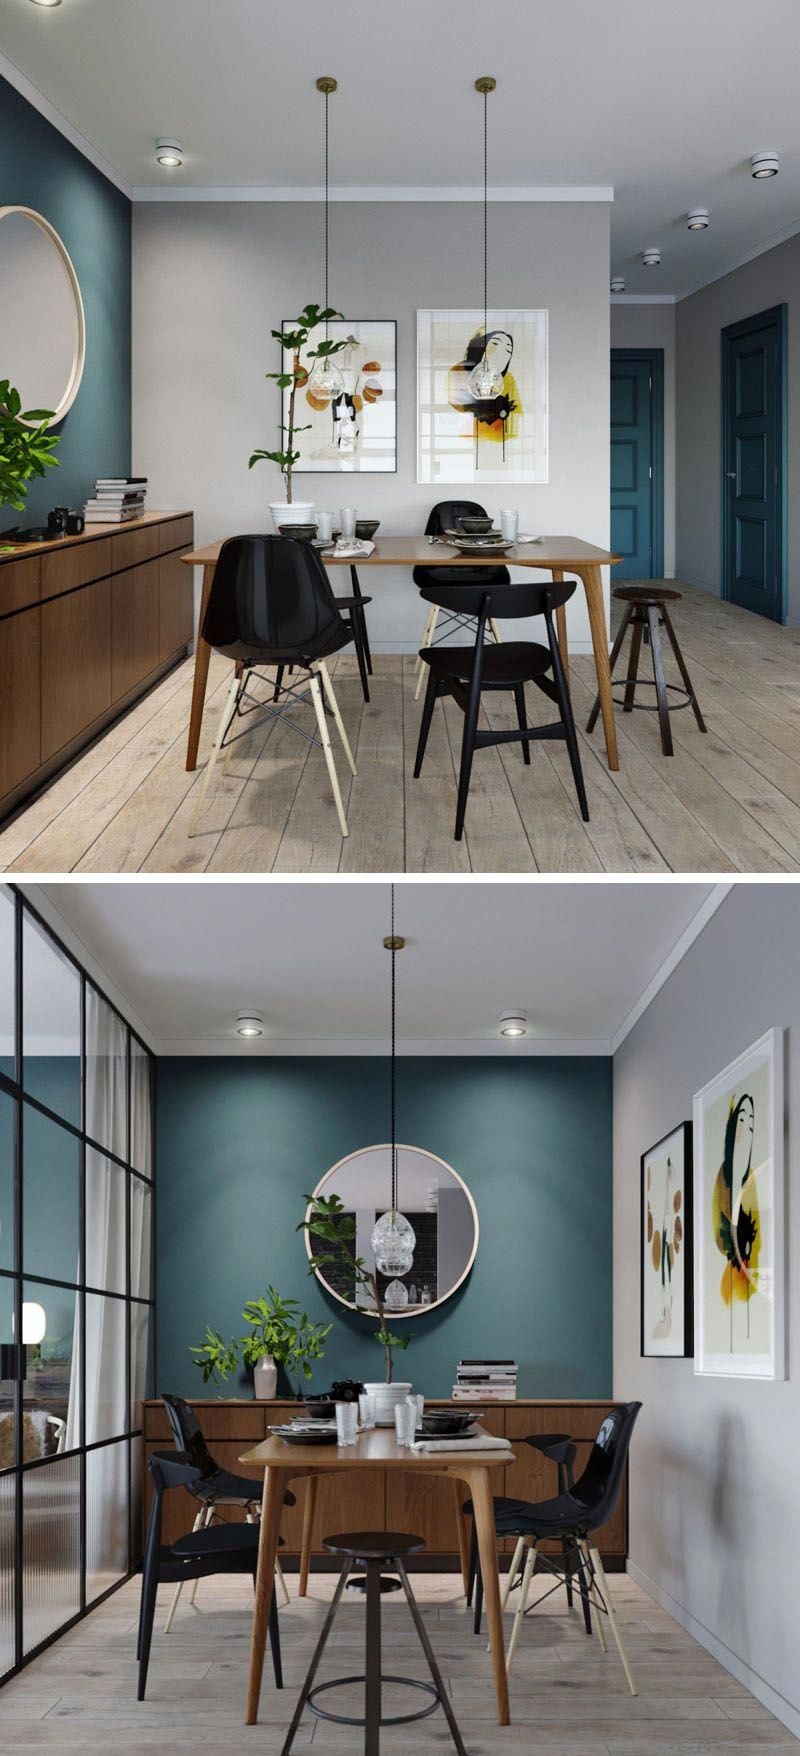 In This Small Apartment The Dining Area Has A Deep Teal Blue Accent Wall That Ties In With The Front Door And Blue Accent Walls House Interior Interior Design